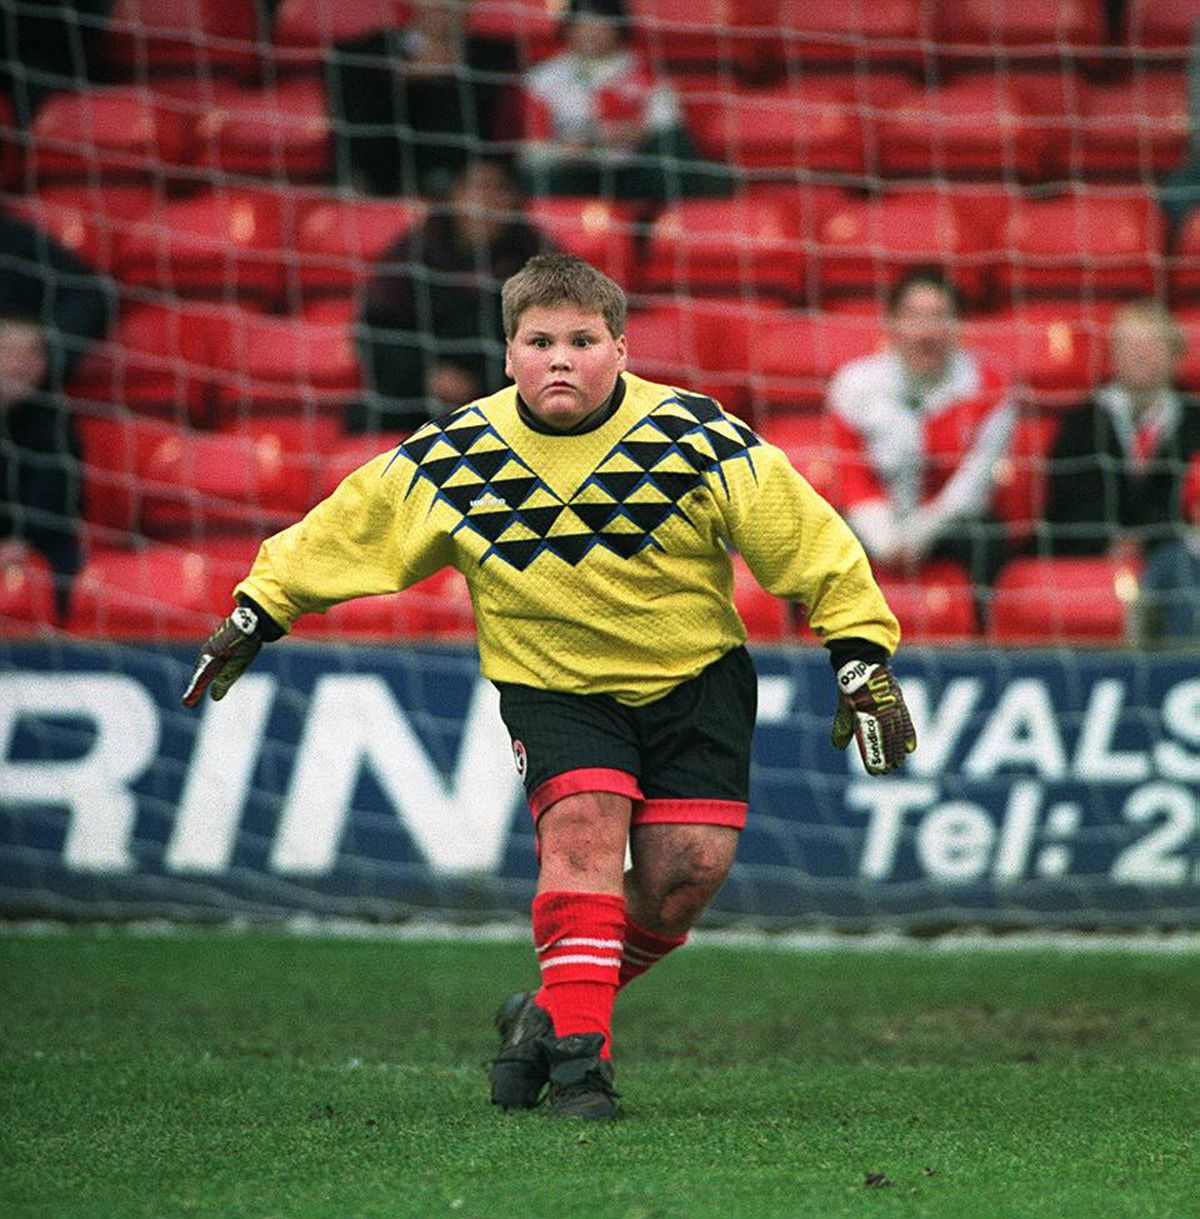 Maurice Willetts, aged 13, in goal during half-time at the Bescot Stadium